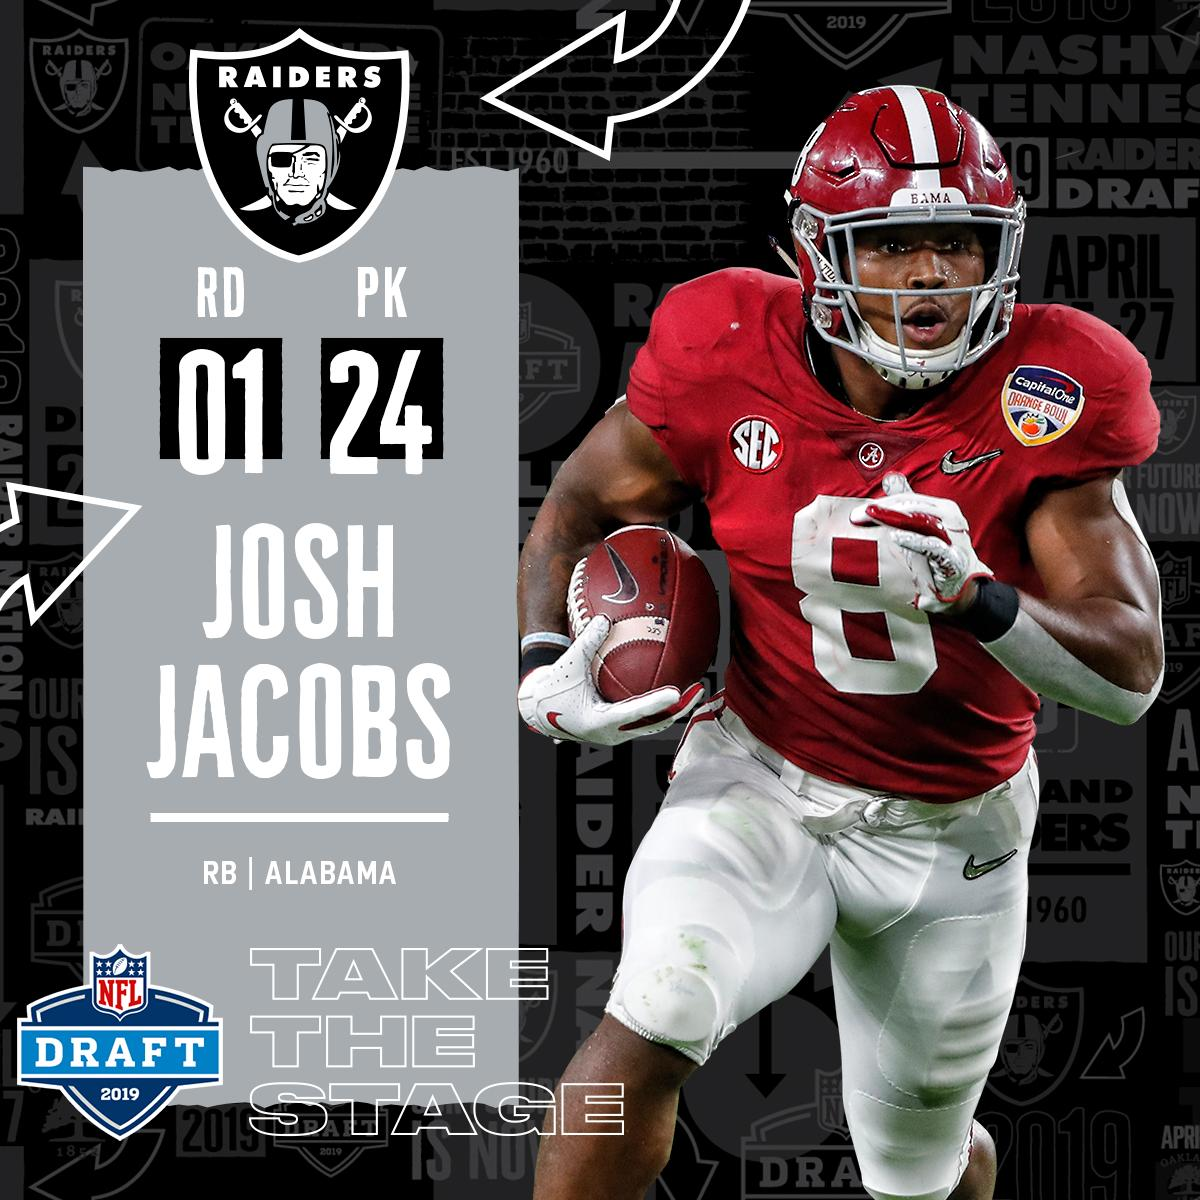 NFL's photo on Josh Jacobs